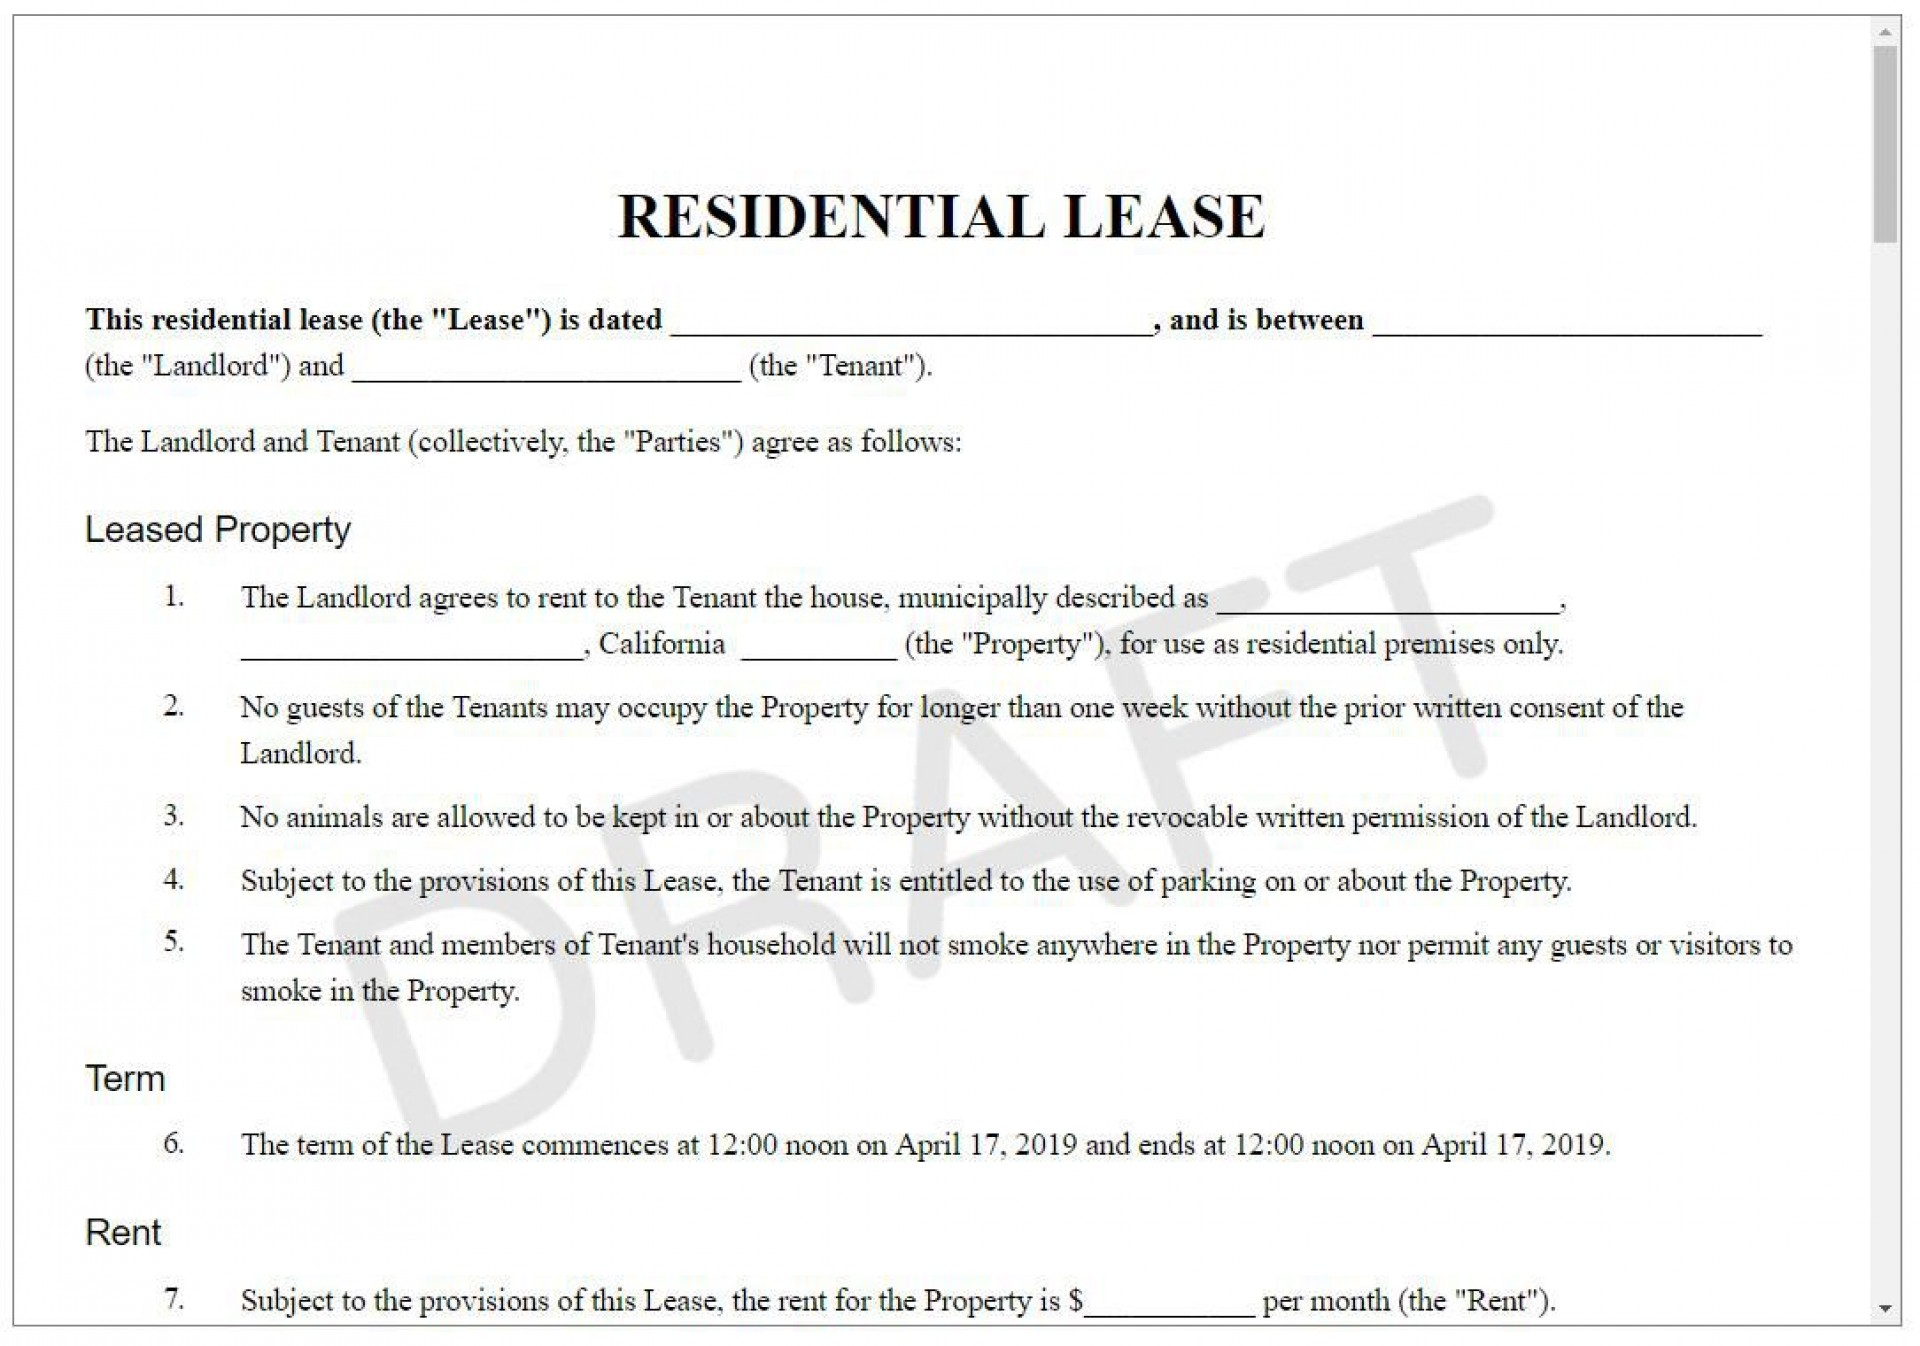 008 Stunning Tenant Contract Template Free Design  Simple House Rental Tenancy Agreement Uk1920